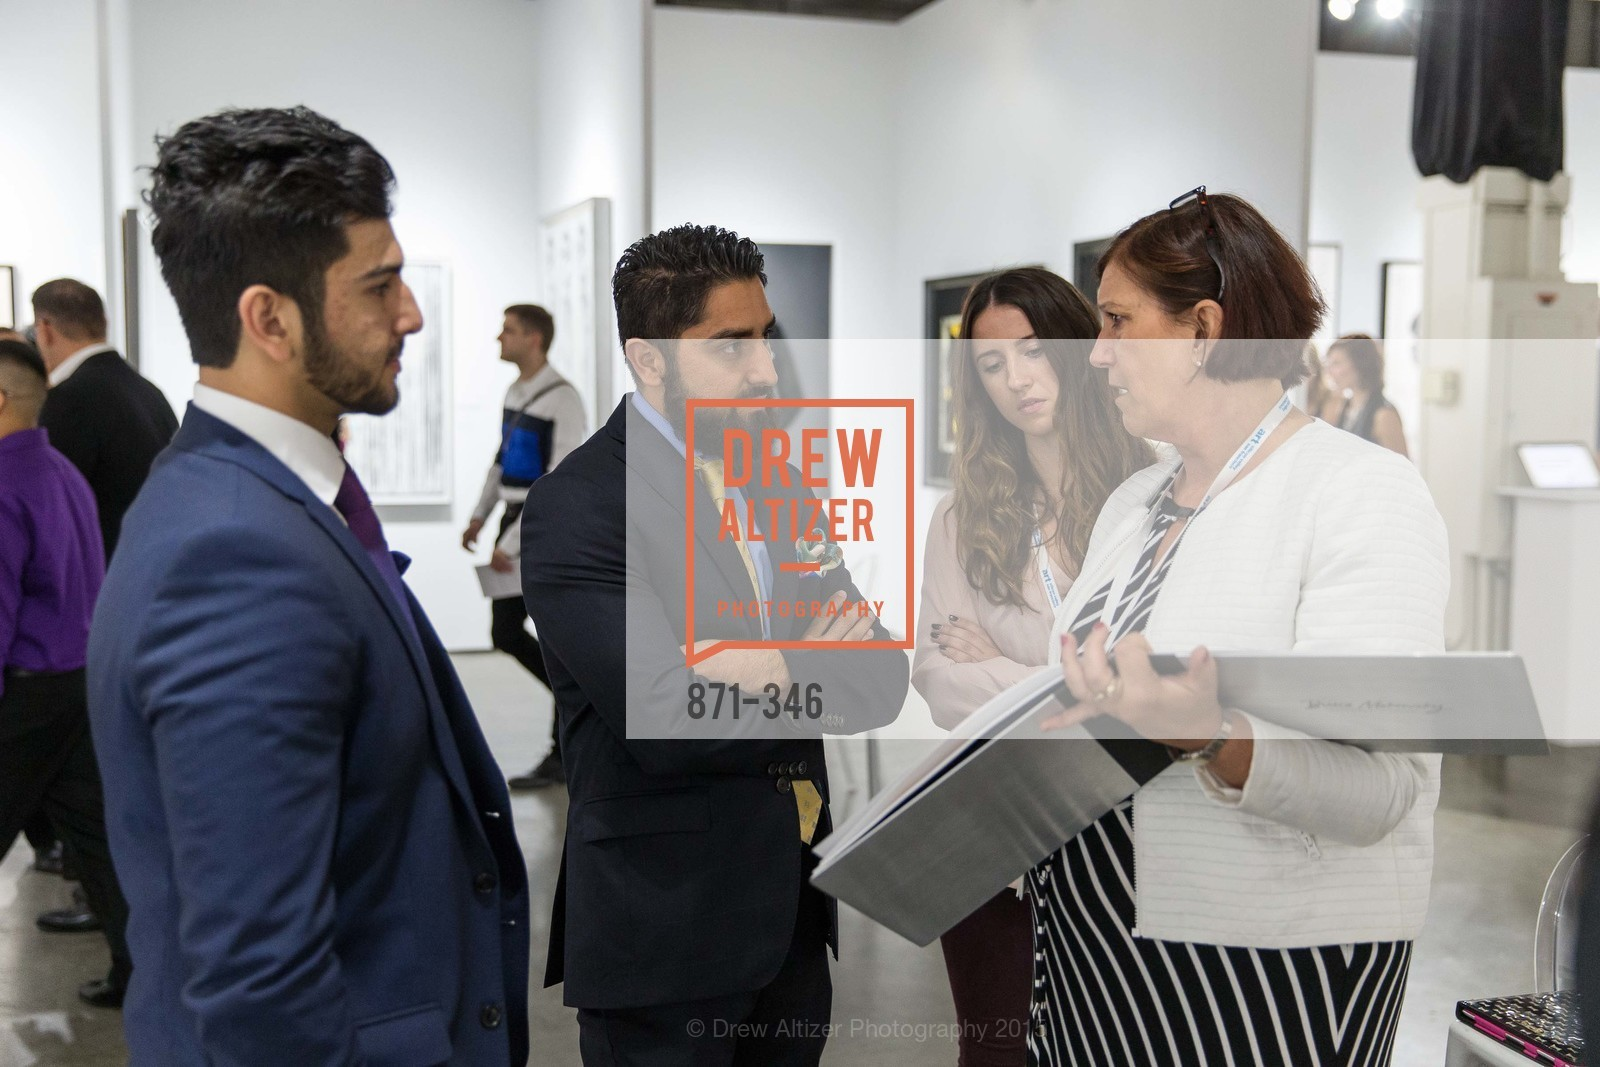 Roh Habibi, Art Miami Presents: Art Silicon Valley, San Mateo County Event Center. 1346 Saratoga Dr, October 8th, 2015,Drew Altizer, Drew Altizer Photography, full-service agency, private events, San Francisco photographer, photographer california